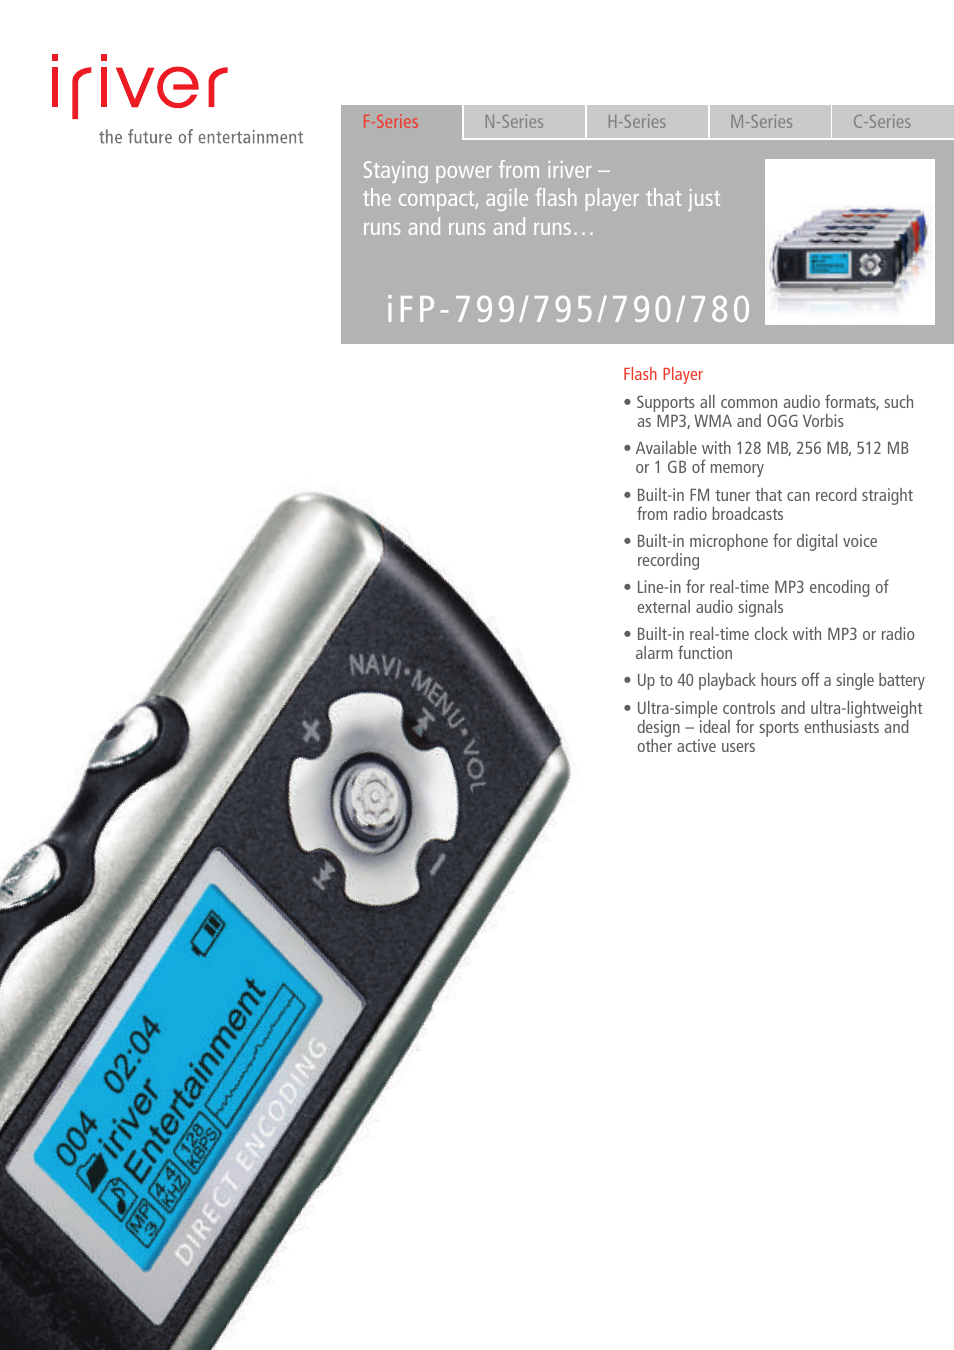 iriver ifp 780 user manual 2 pages also for ifp 799 ifp 795 rh manualsdir com Iriver Ifp 890 Install Disc Iriver Ifp 790